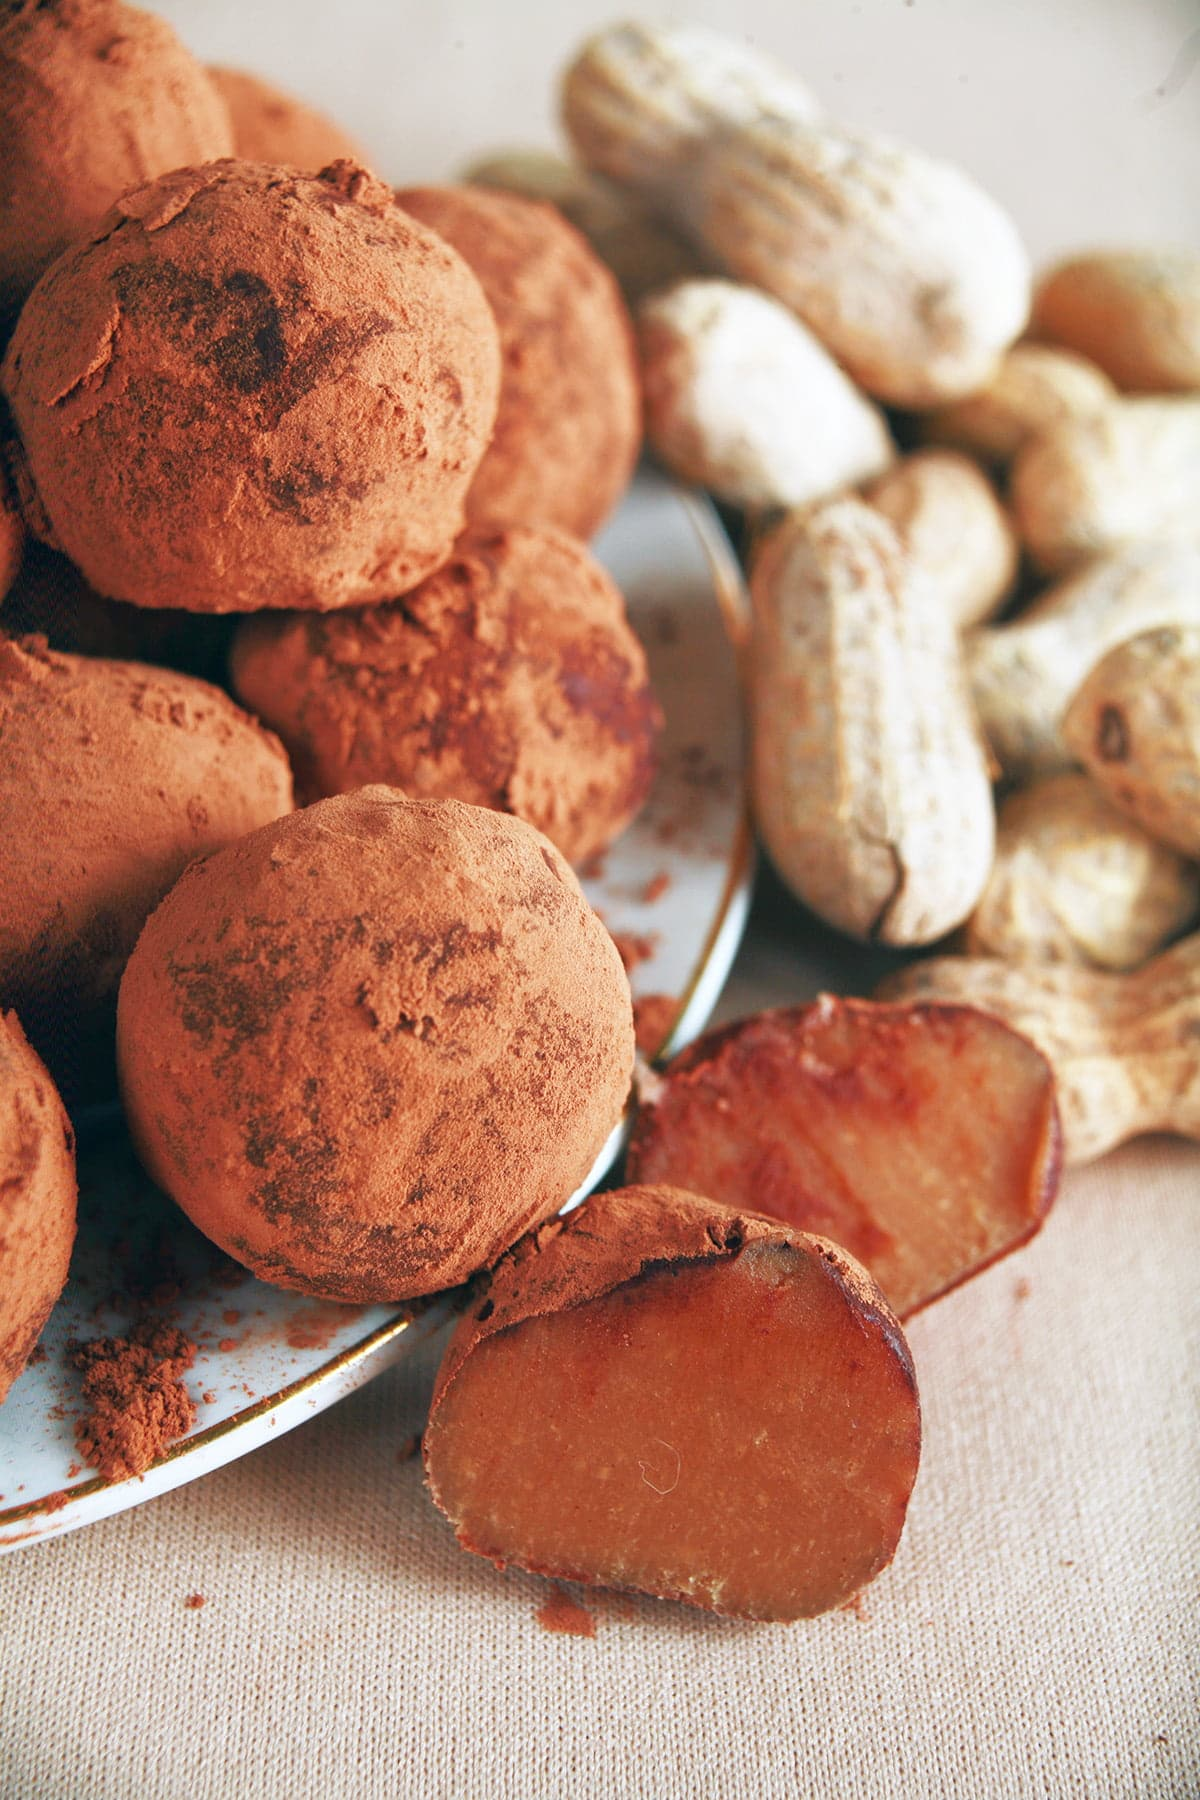 Several peanut butter chip truffles are spilling off a small plate, with whole peanuts in the shell on display behind them.